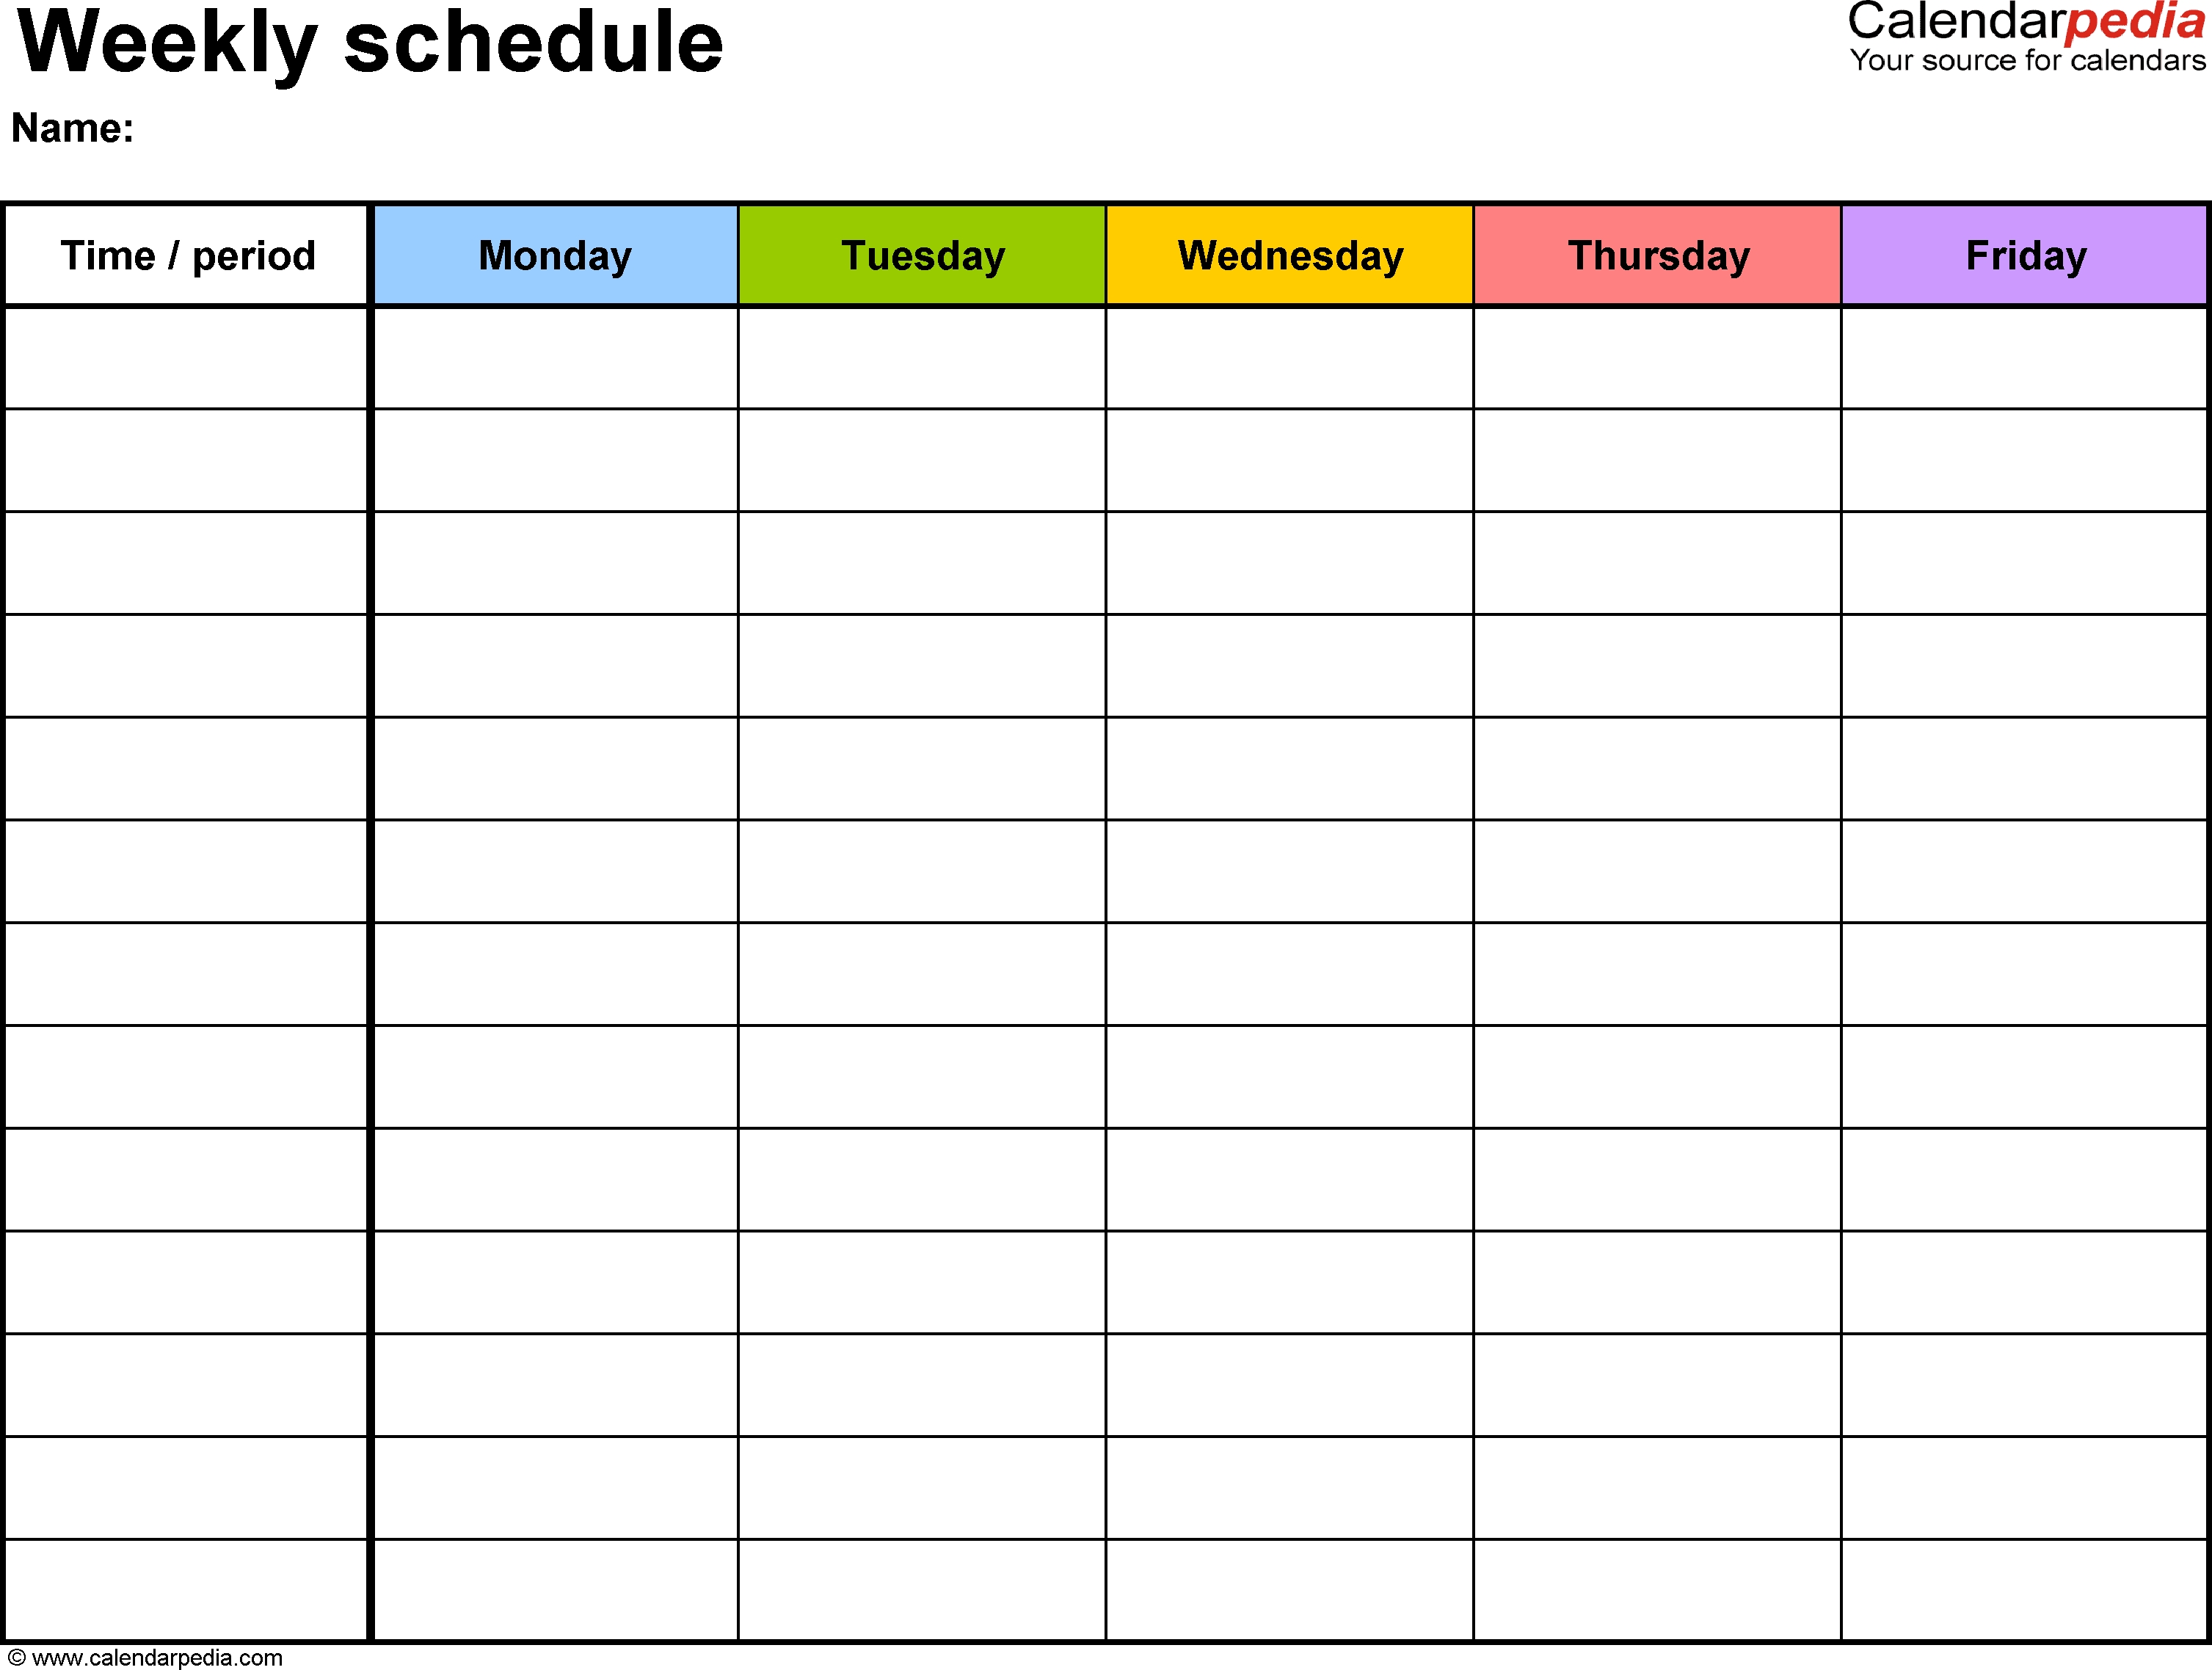 Free Weekly Schedule Templates For Word With Times Template Time throughout Weekly Planner Template With Time Slots